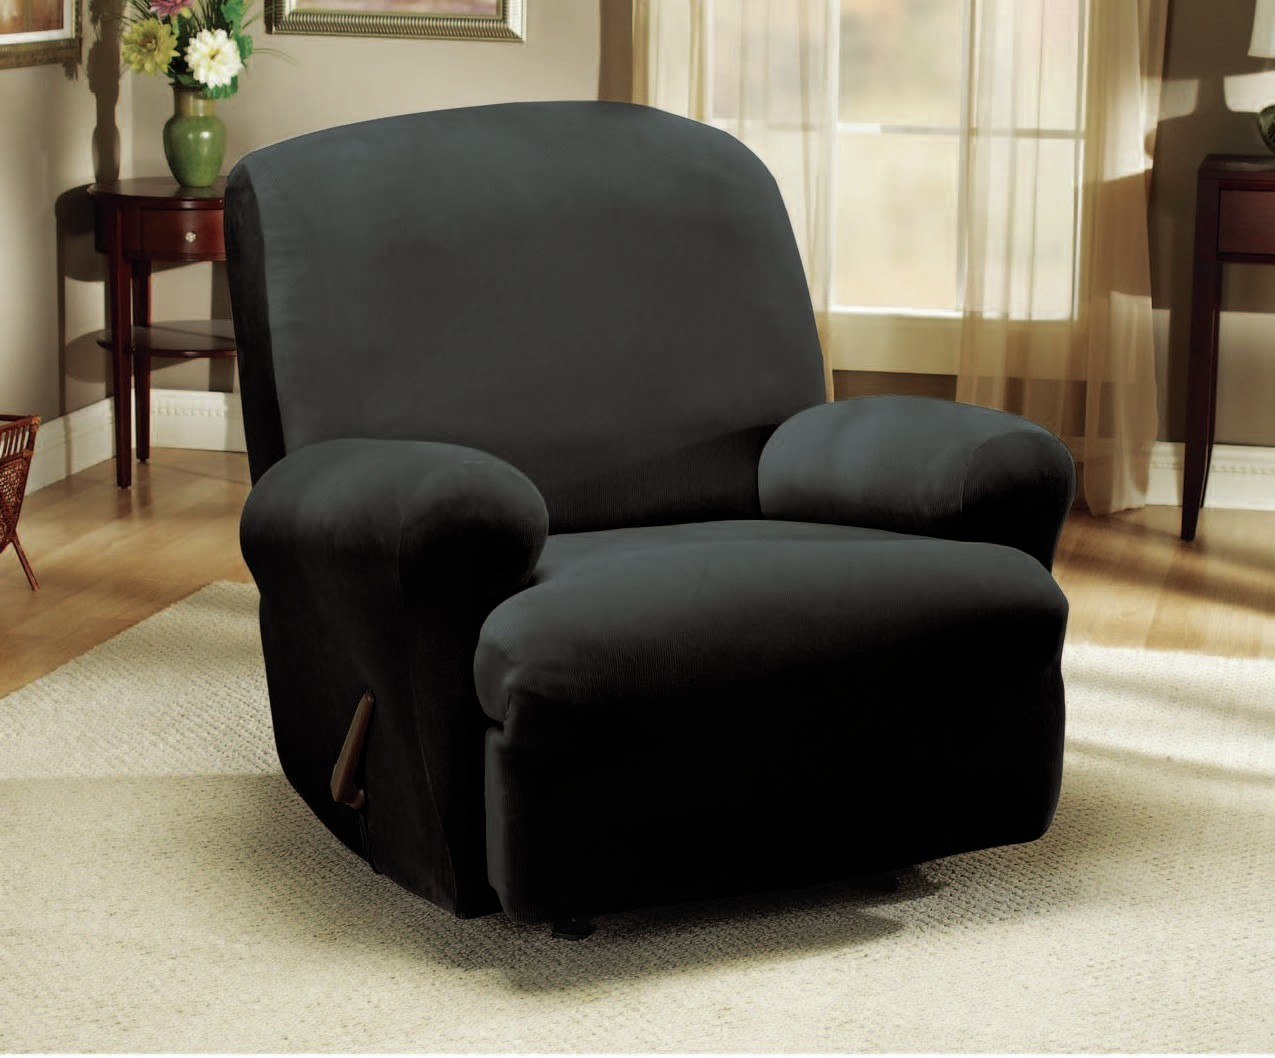 chair covers on ebay for sale in nj new pearson recliner cover